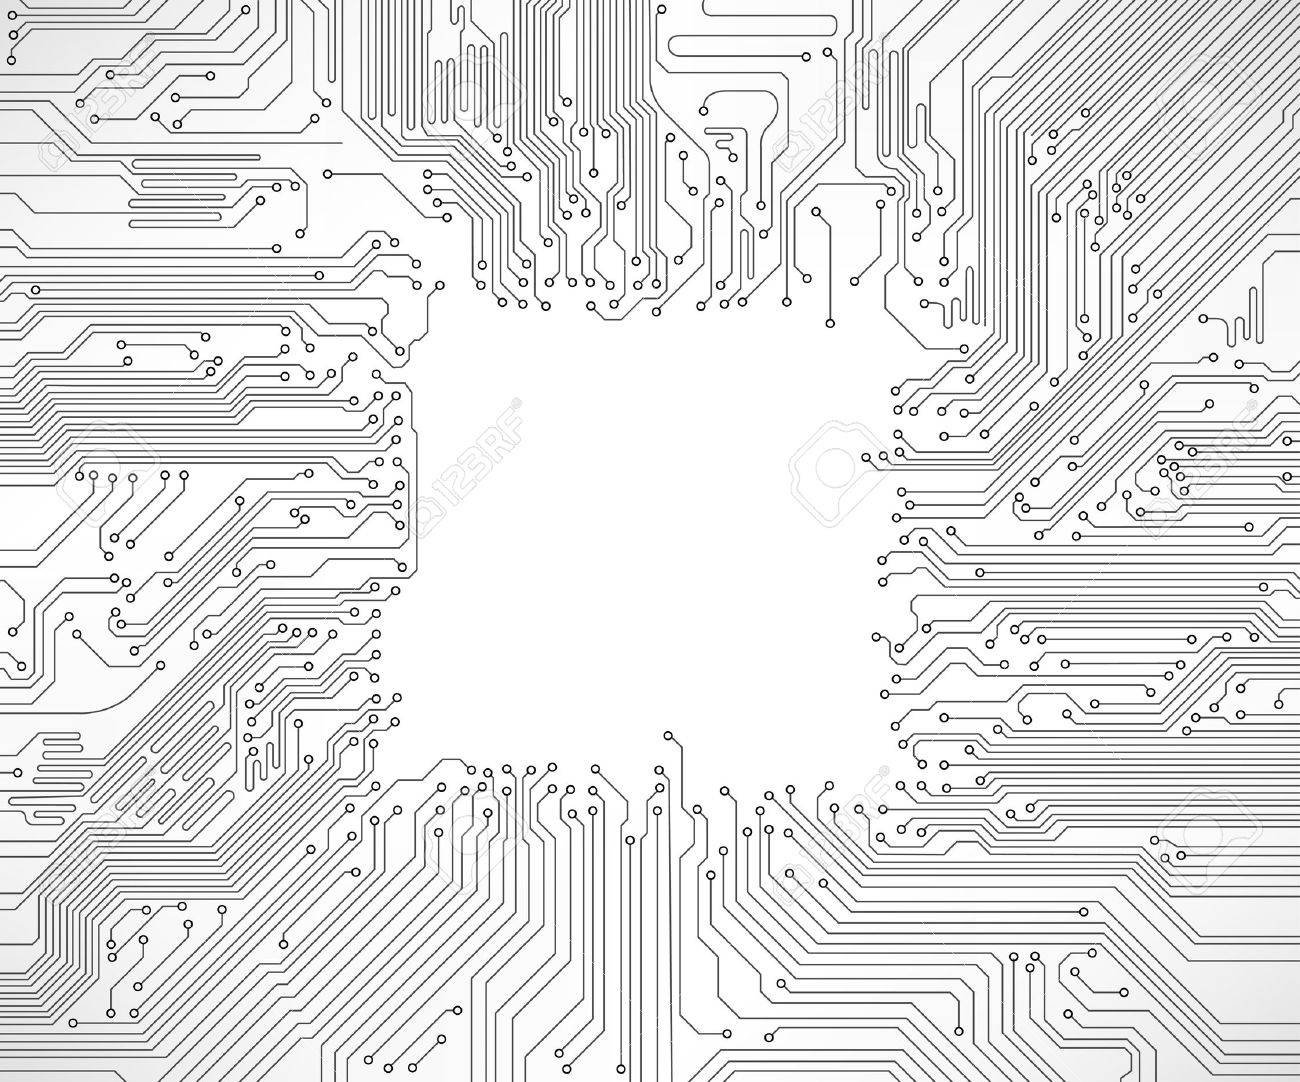 Circuit Board Background Royalty Free Cliparts, Vectors, And Stock ...